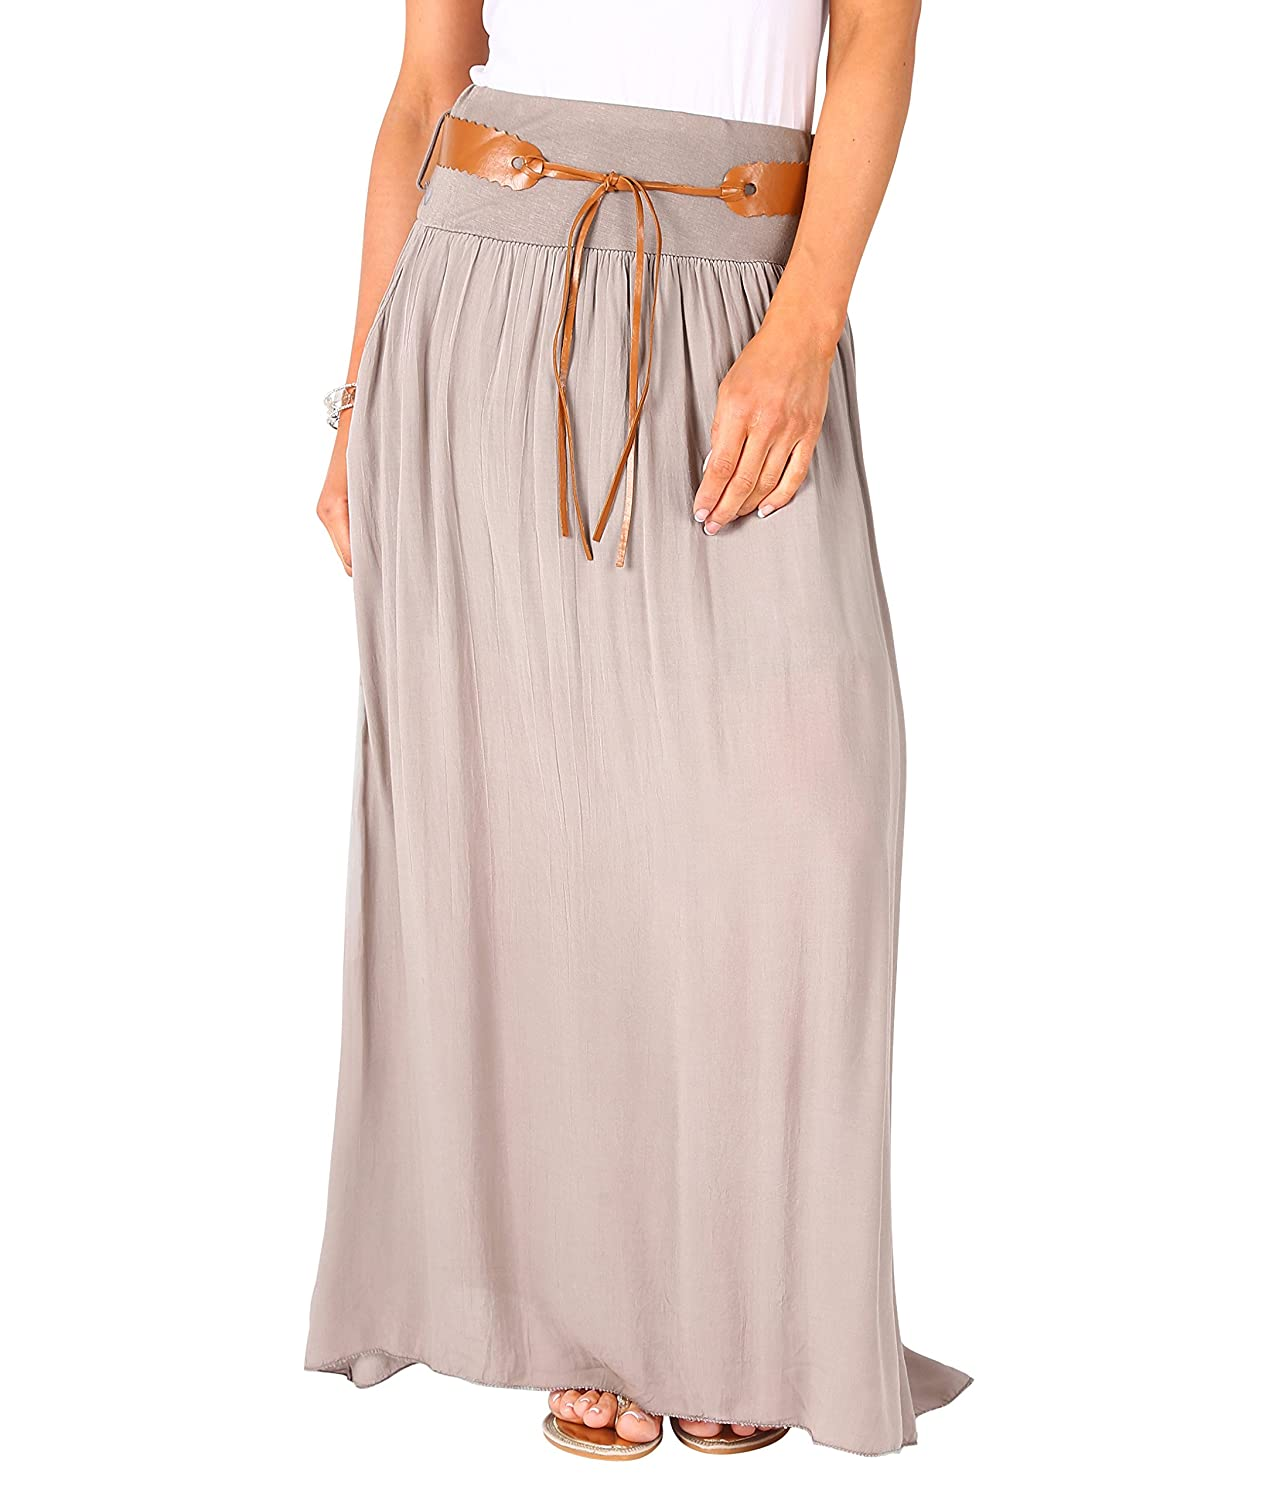 2c84f938b8 Make that Peace & Love statement with Gypsy style skirt. It\'s truly the  one to wear this season, glammed-up or dressed down.